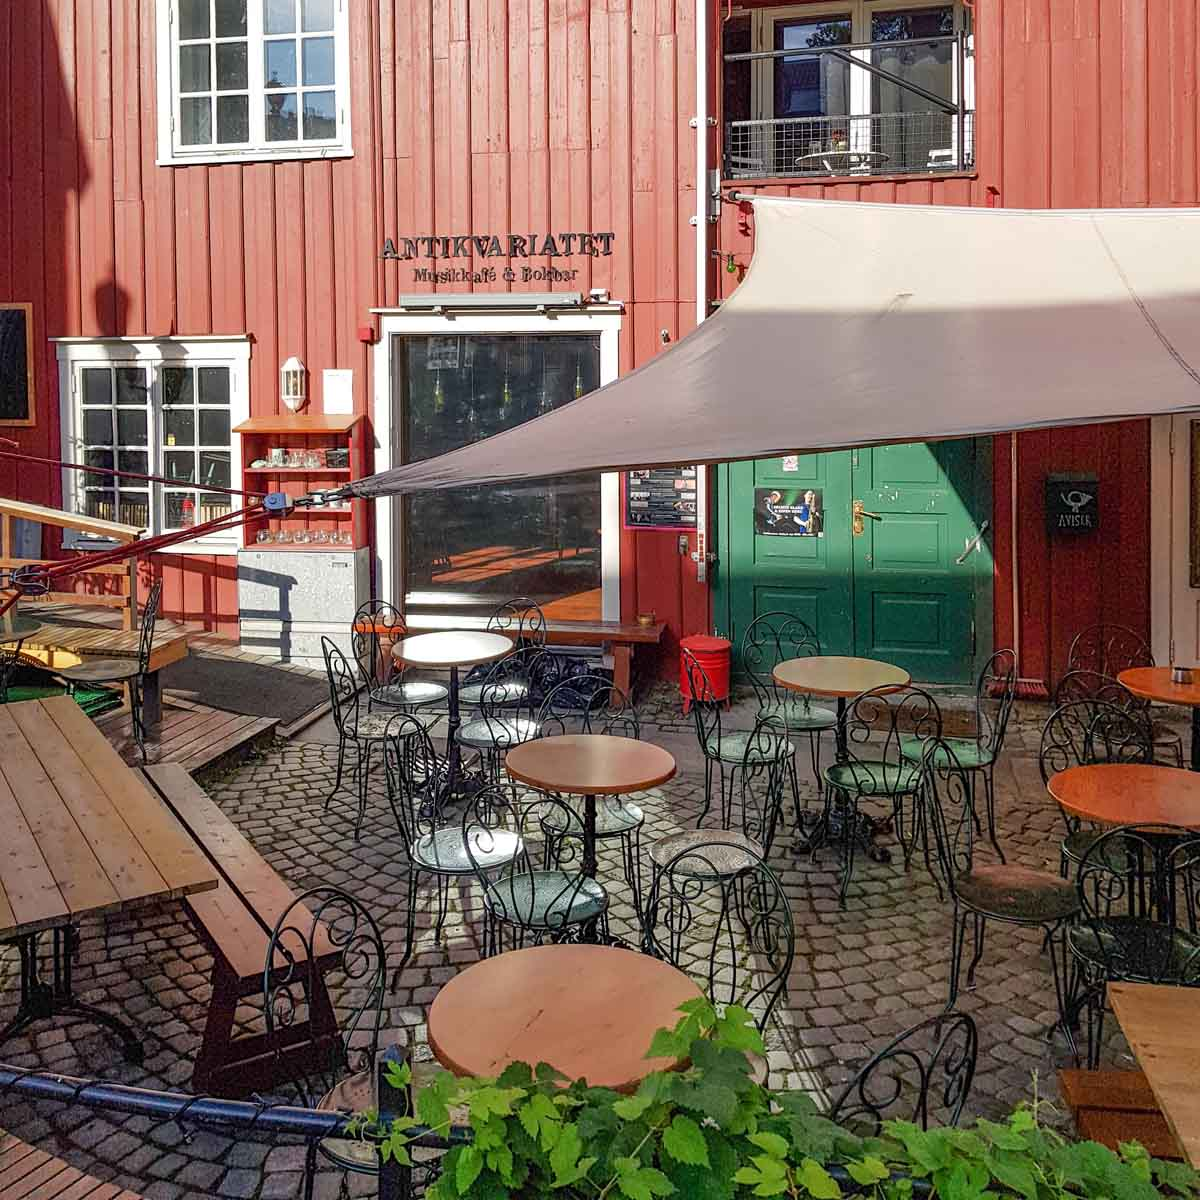 Antikvariatet, 23x eten en drinken in Trondheim - Map of Joy